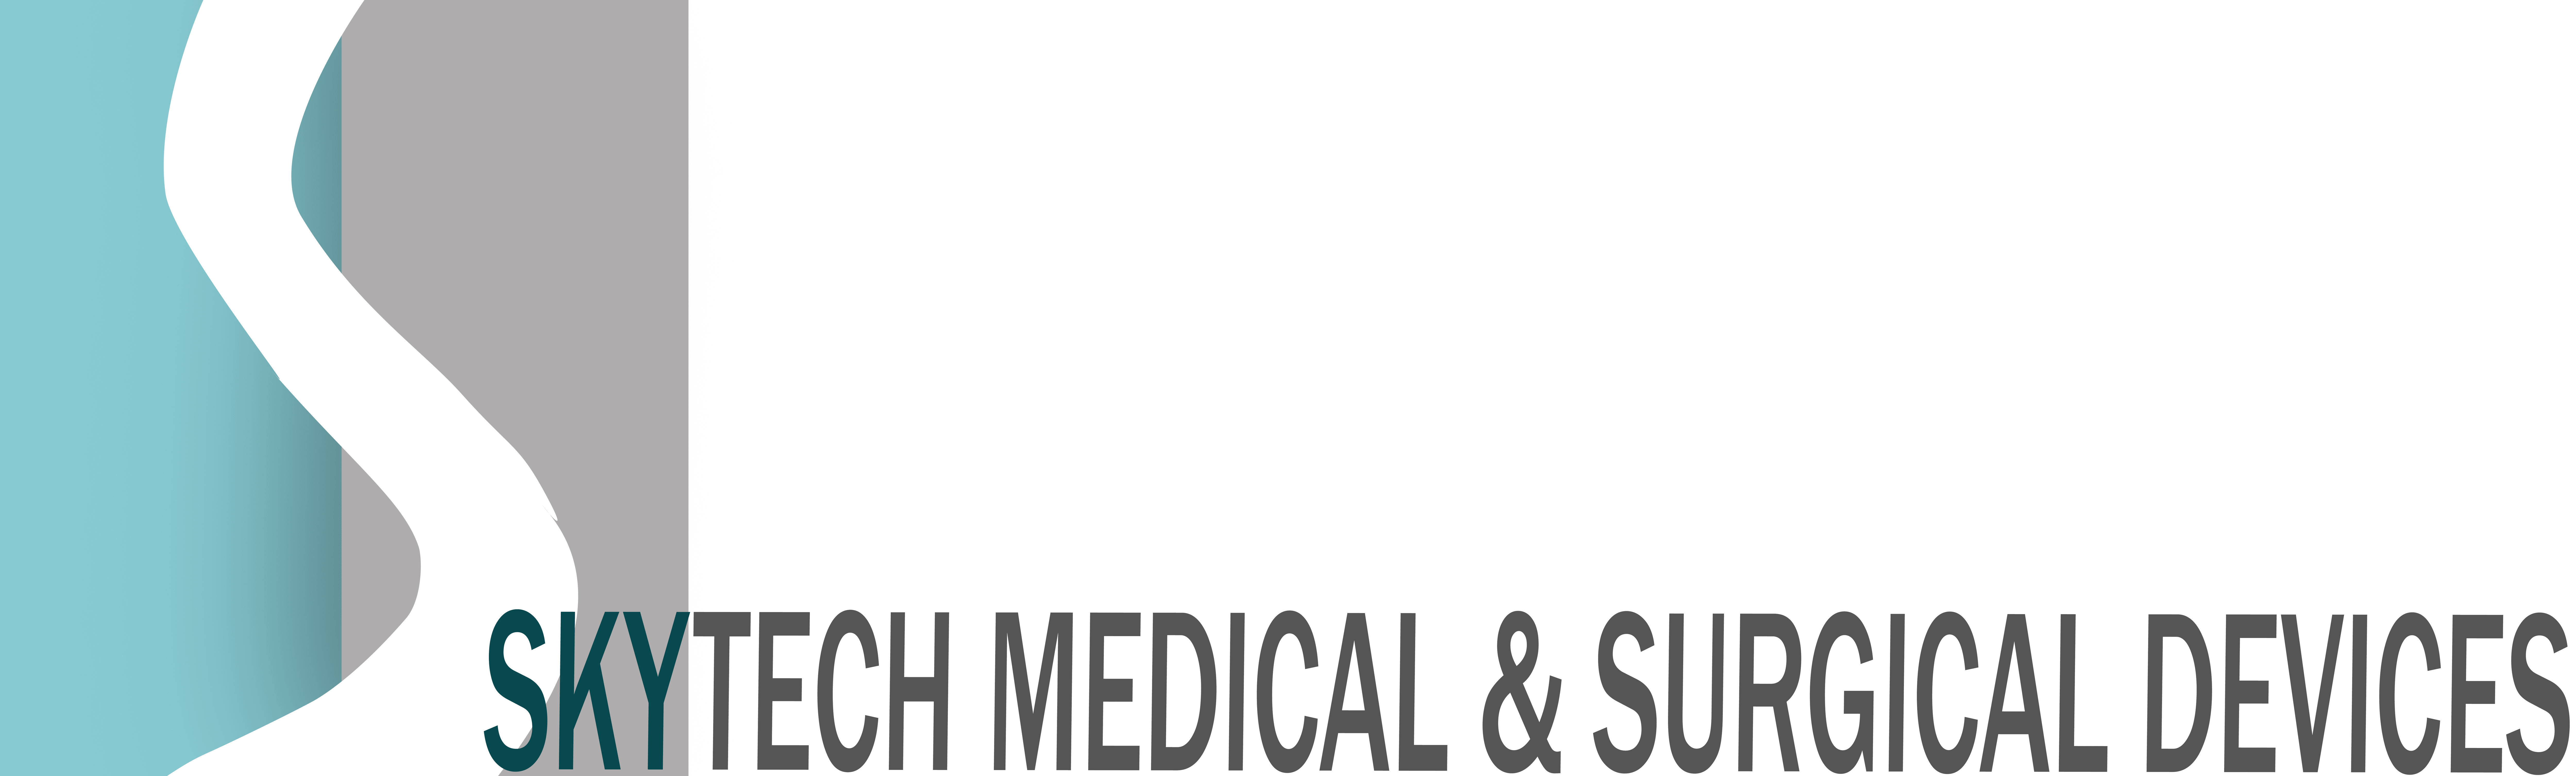 Skytech Medical and Surgical Devices